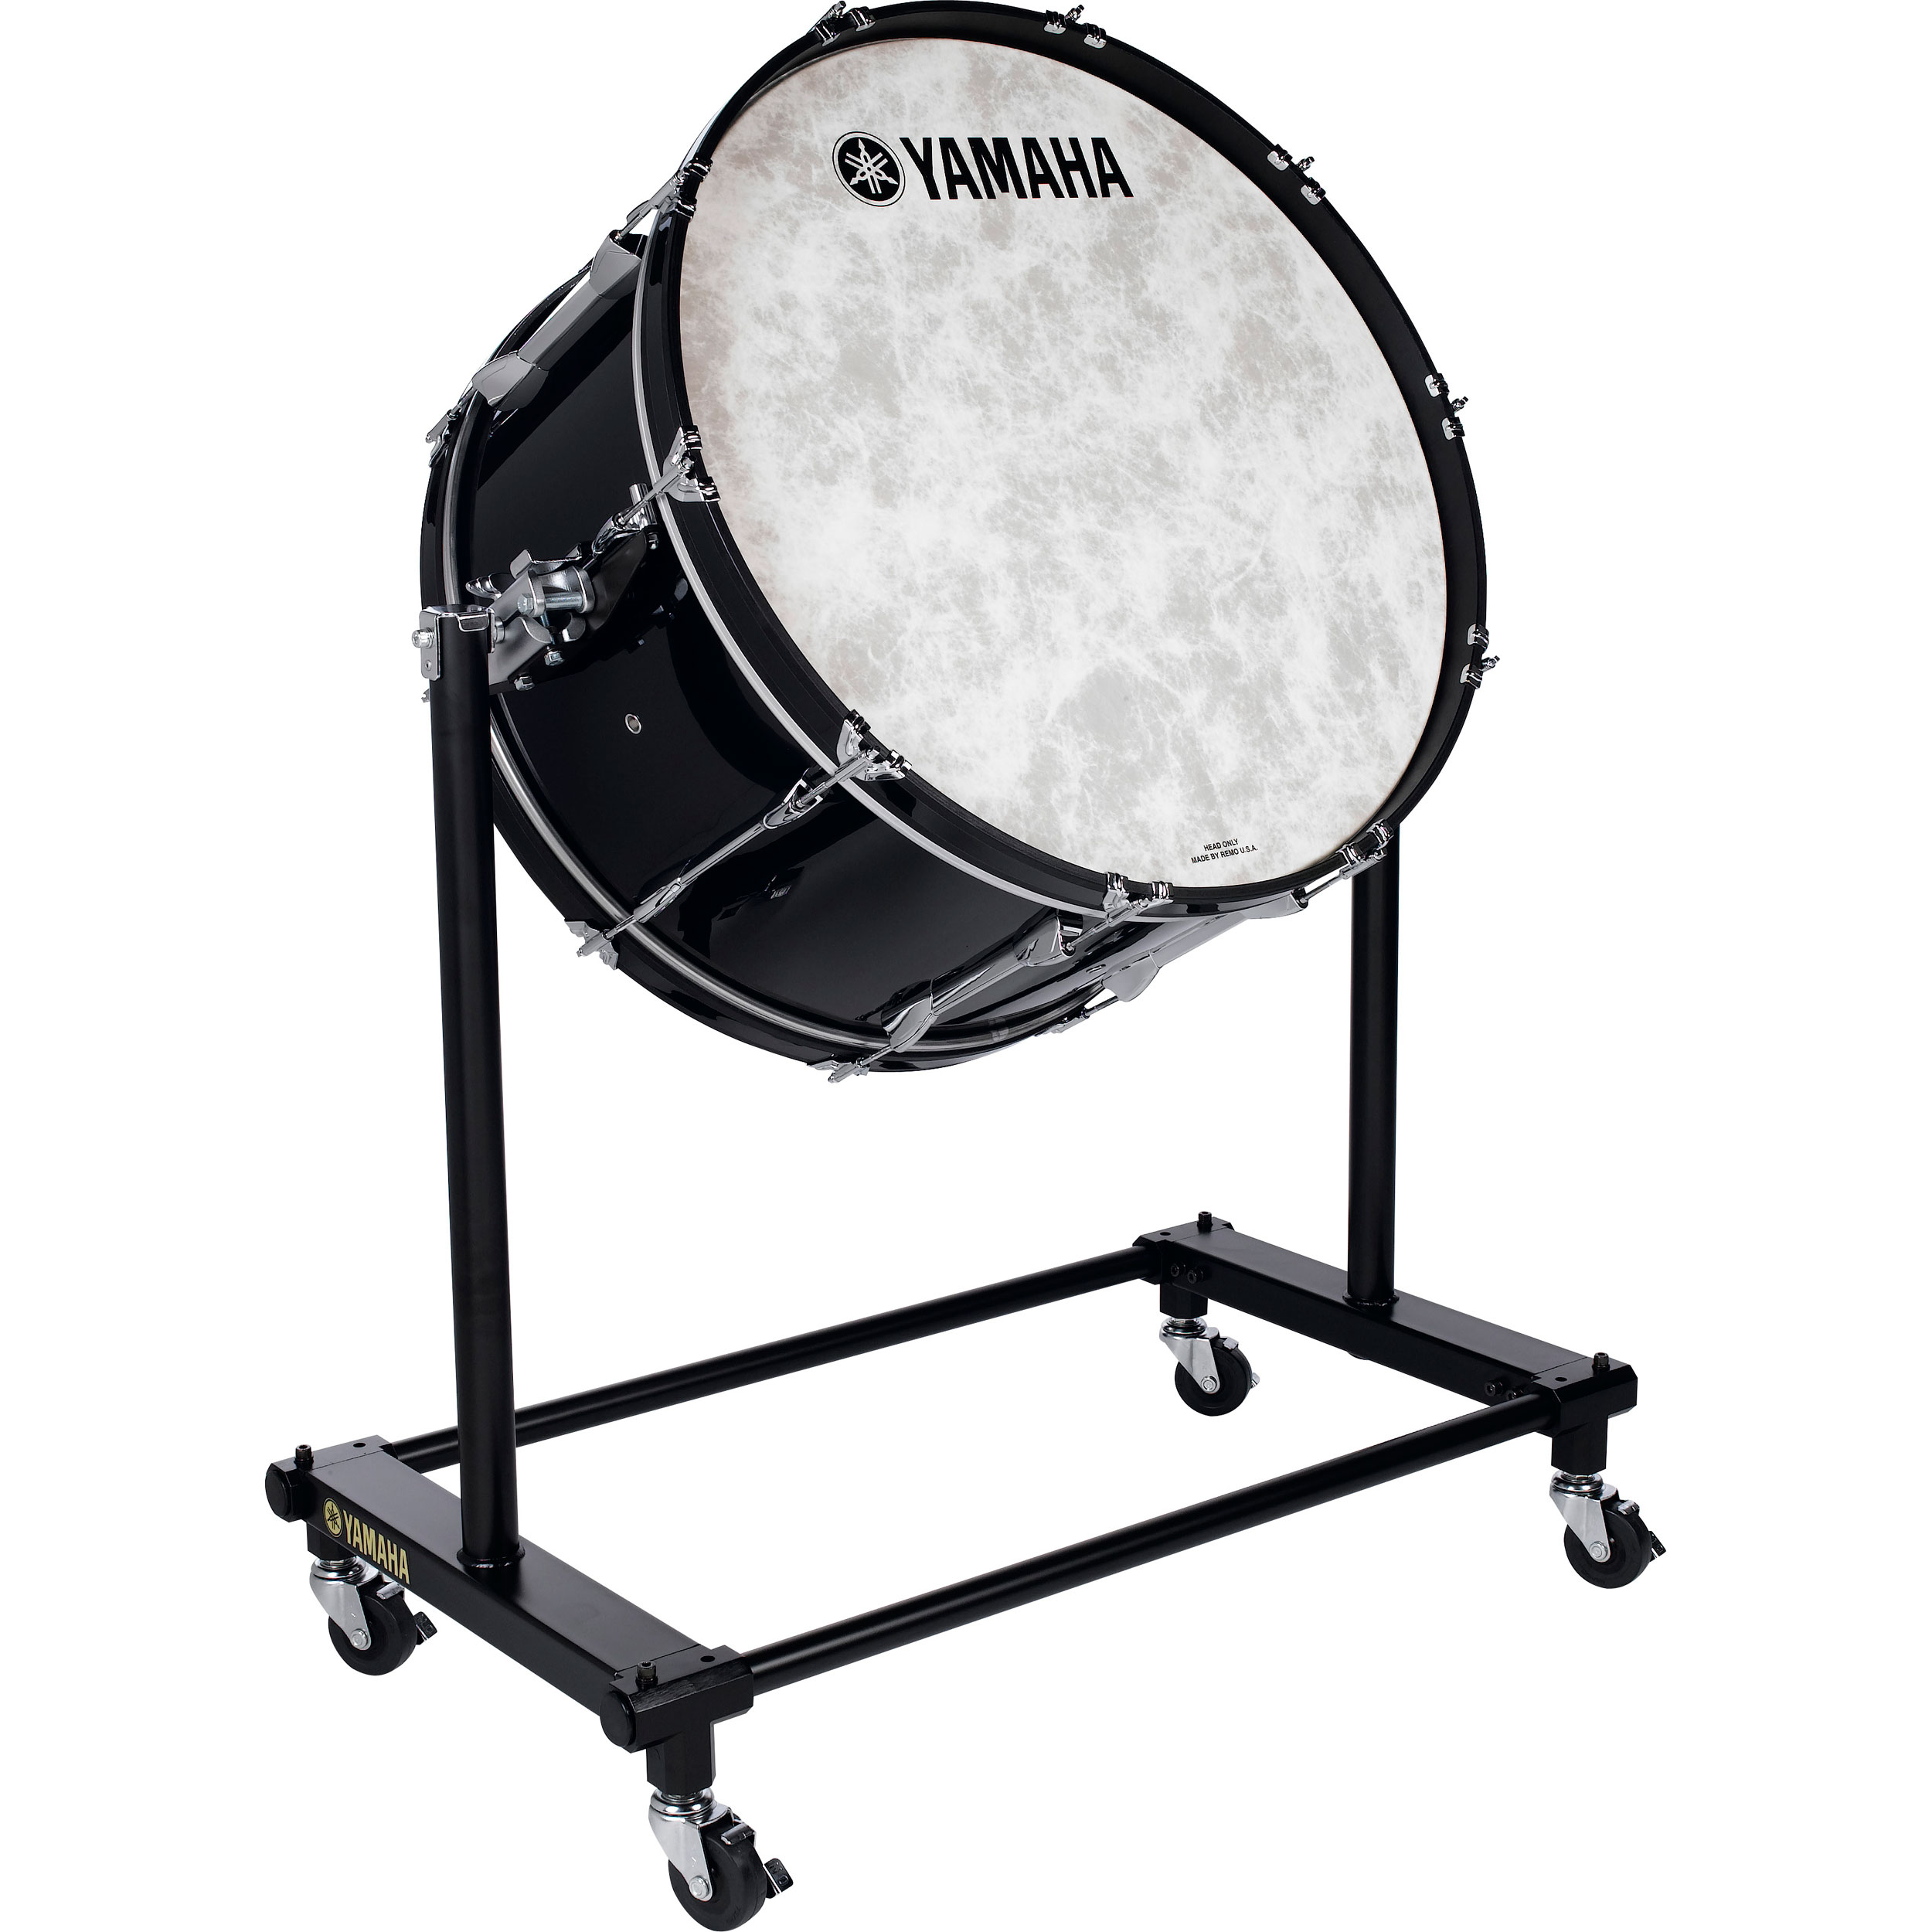 "Yamaha 36"" (Diameter) x 22"" (Deep) 9000 Professional Series Maple Concert Bass Drum in Black"